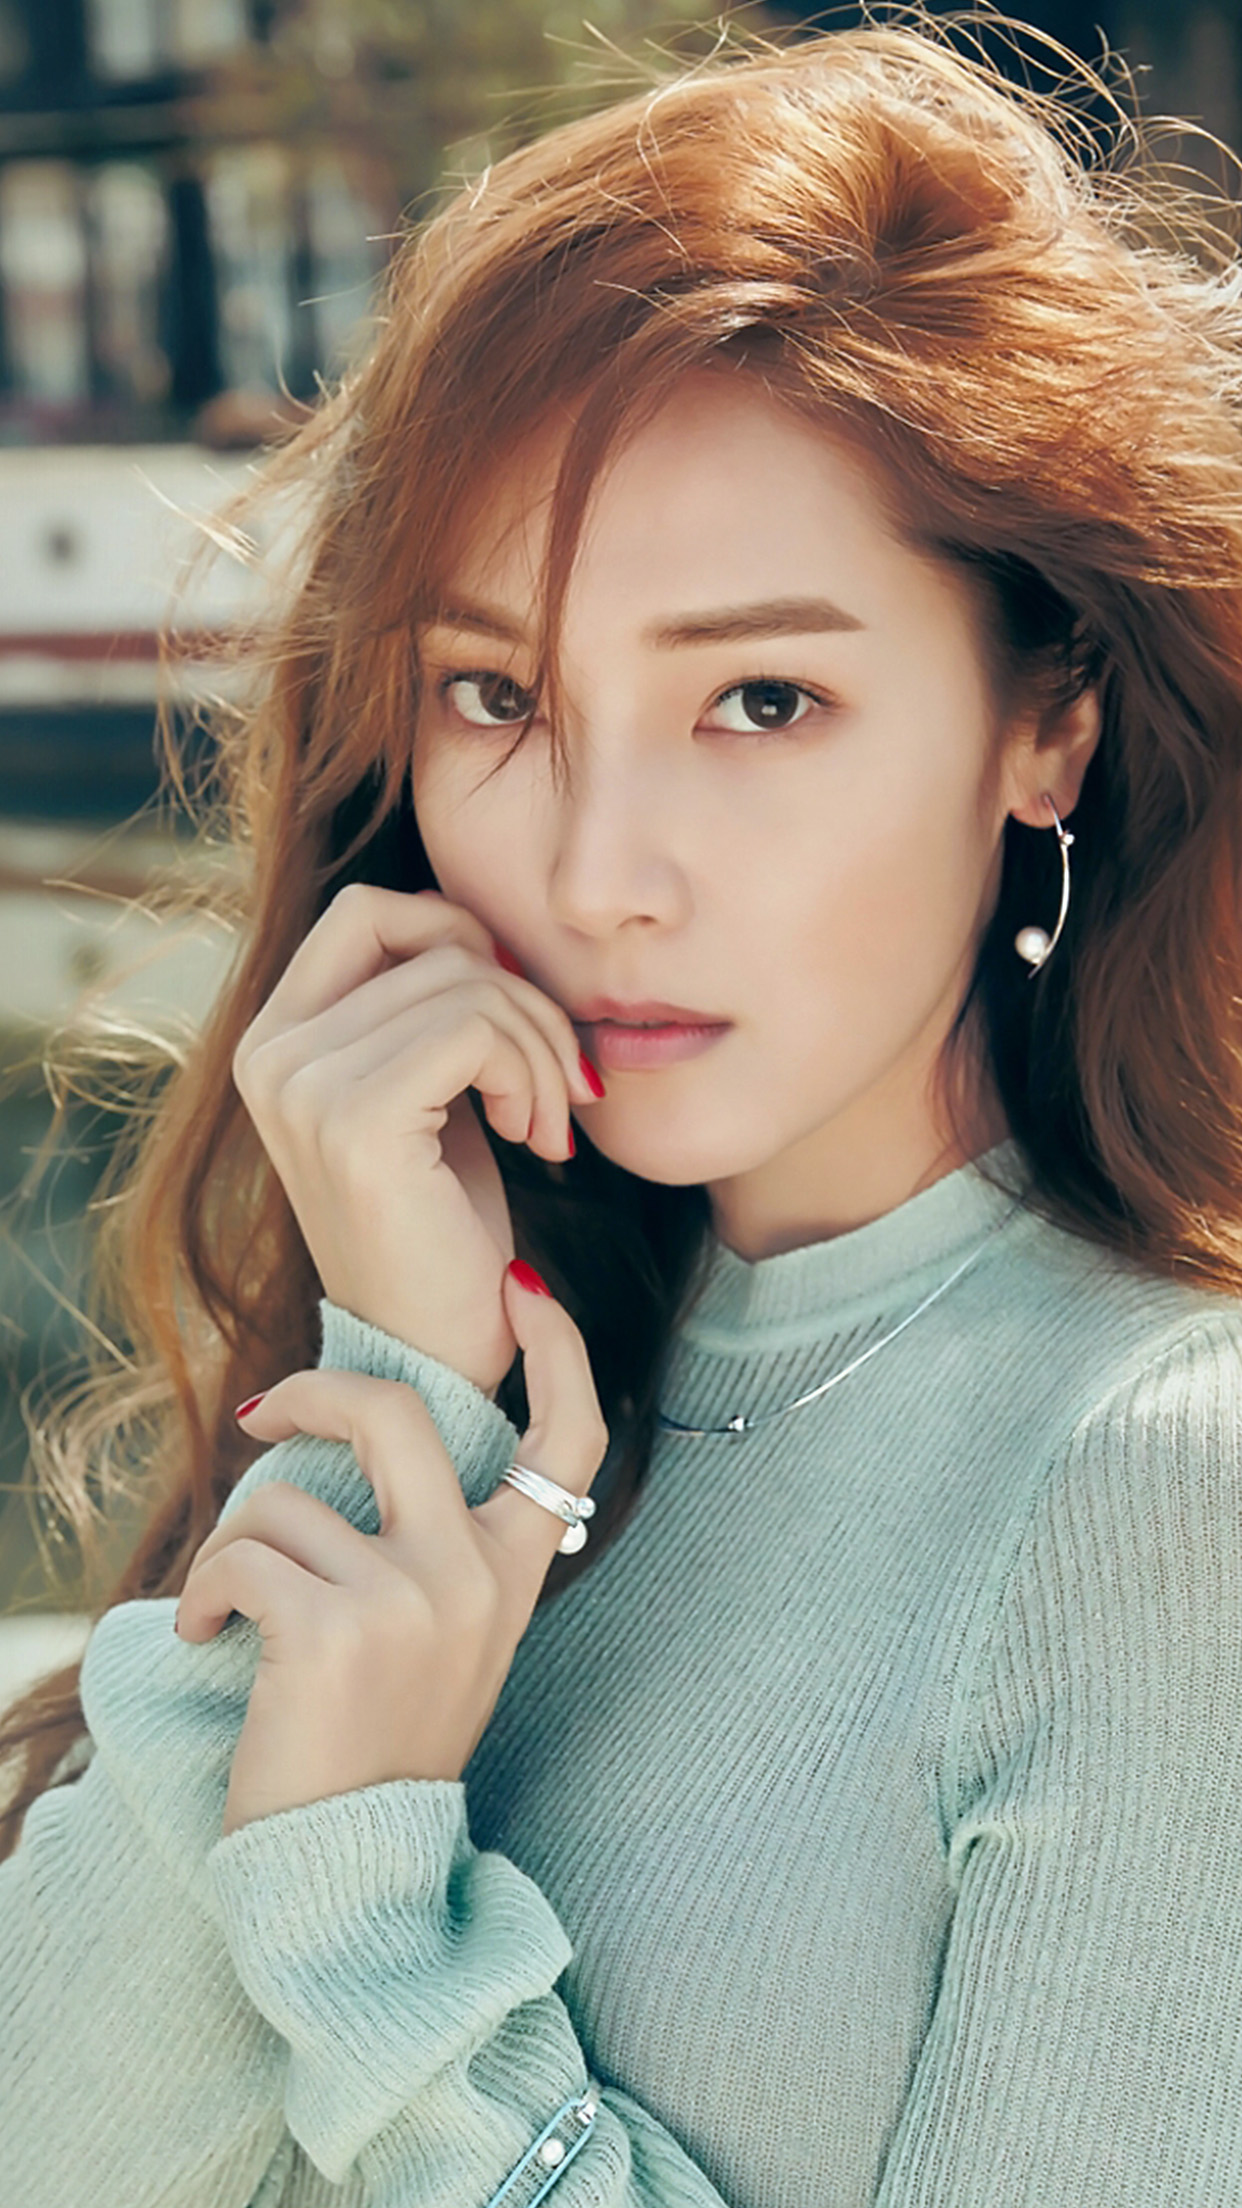 Jessica kpop girl snsd cute woman android wallpaper android hd jessica kpop girl snsd cute woman android wallpaper android hd wallpapers voltagebd Choice Image